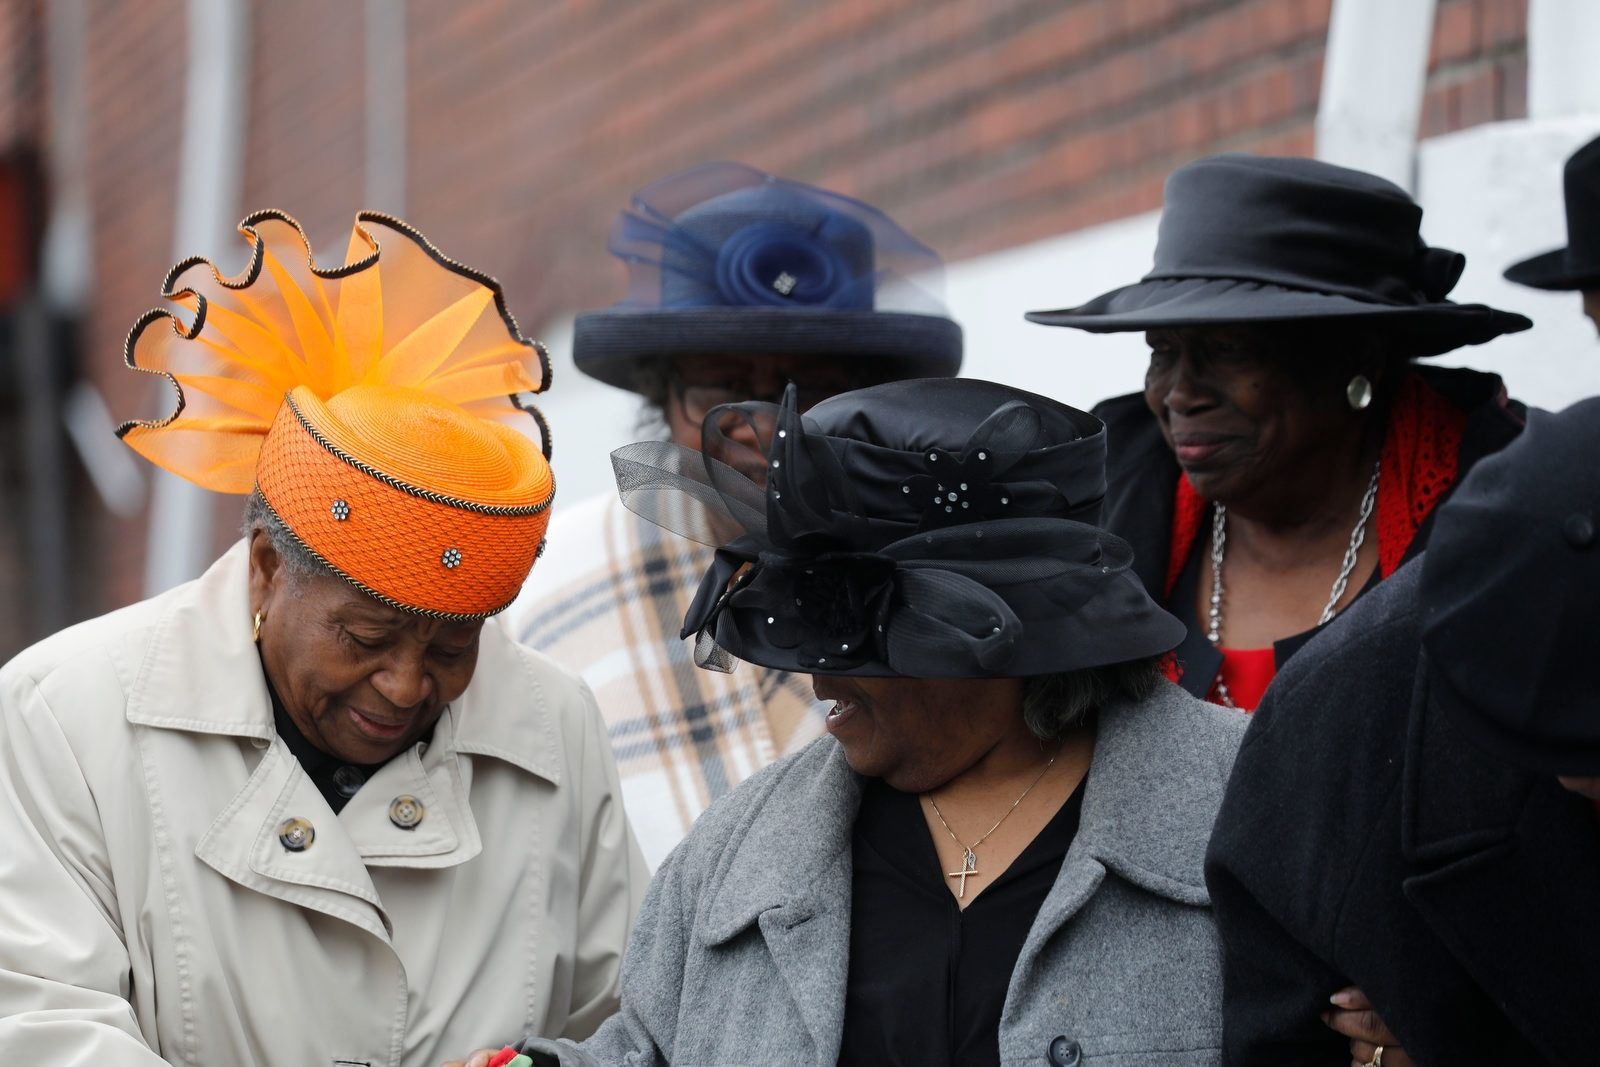 Women in glamorous Easter hats leave New Mount Ararat Temple of Prayer following Easter worship on Sunday, April 21, 2019. From left are Ettie Smith, Mary Phillips, Katherine Barnes and Helen Westmoreland.